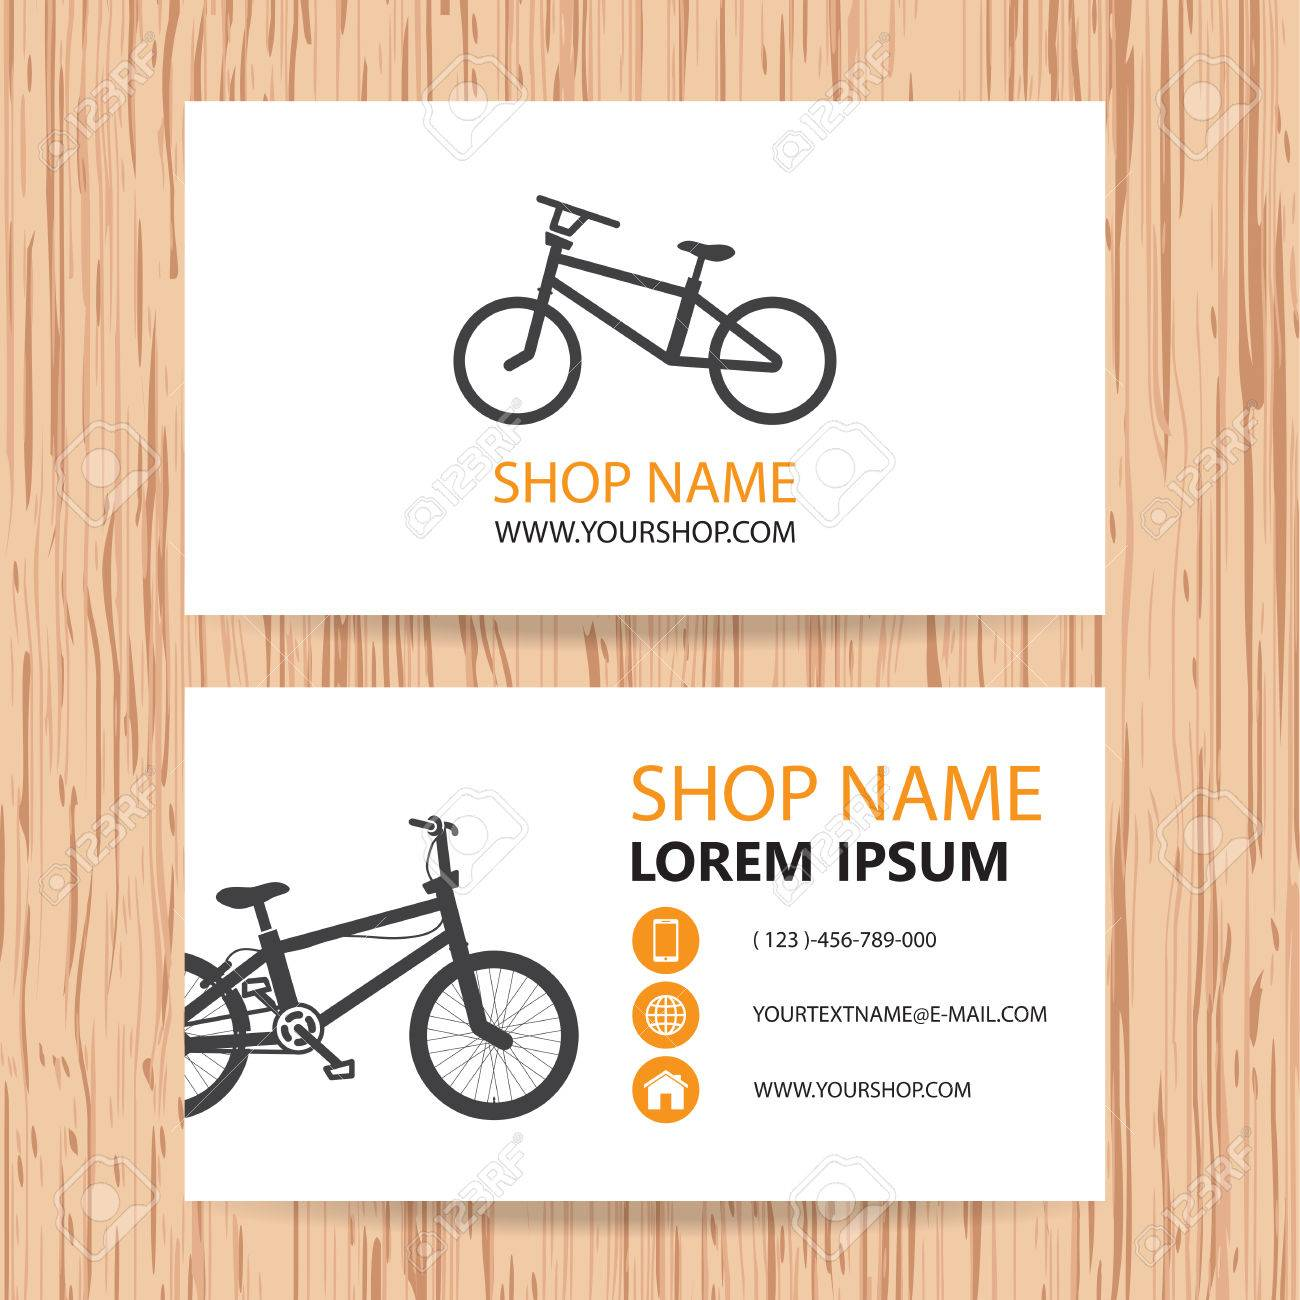 Bicycle business card holder choice image free business cards bicycle business cards choice image free business cards business card vector background bike shop royalty free magicingreecefo Gallery